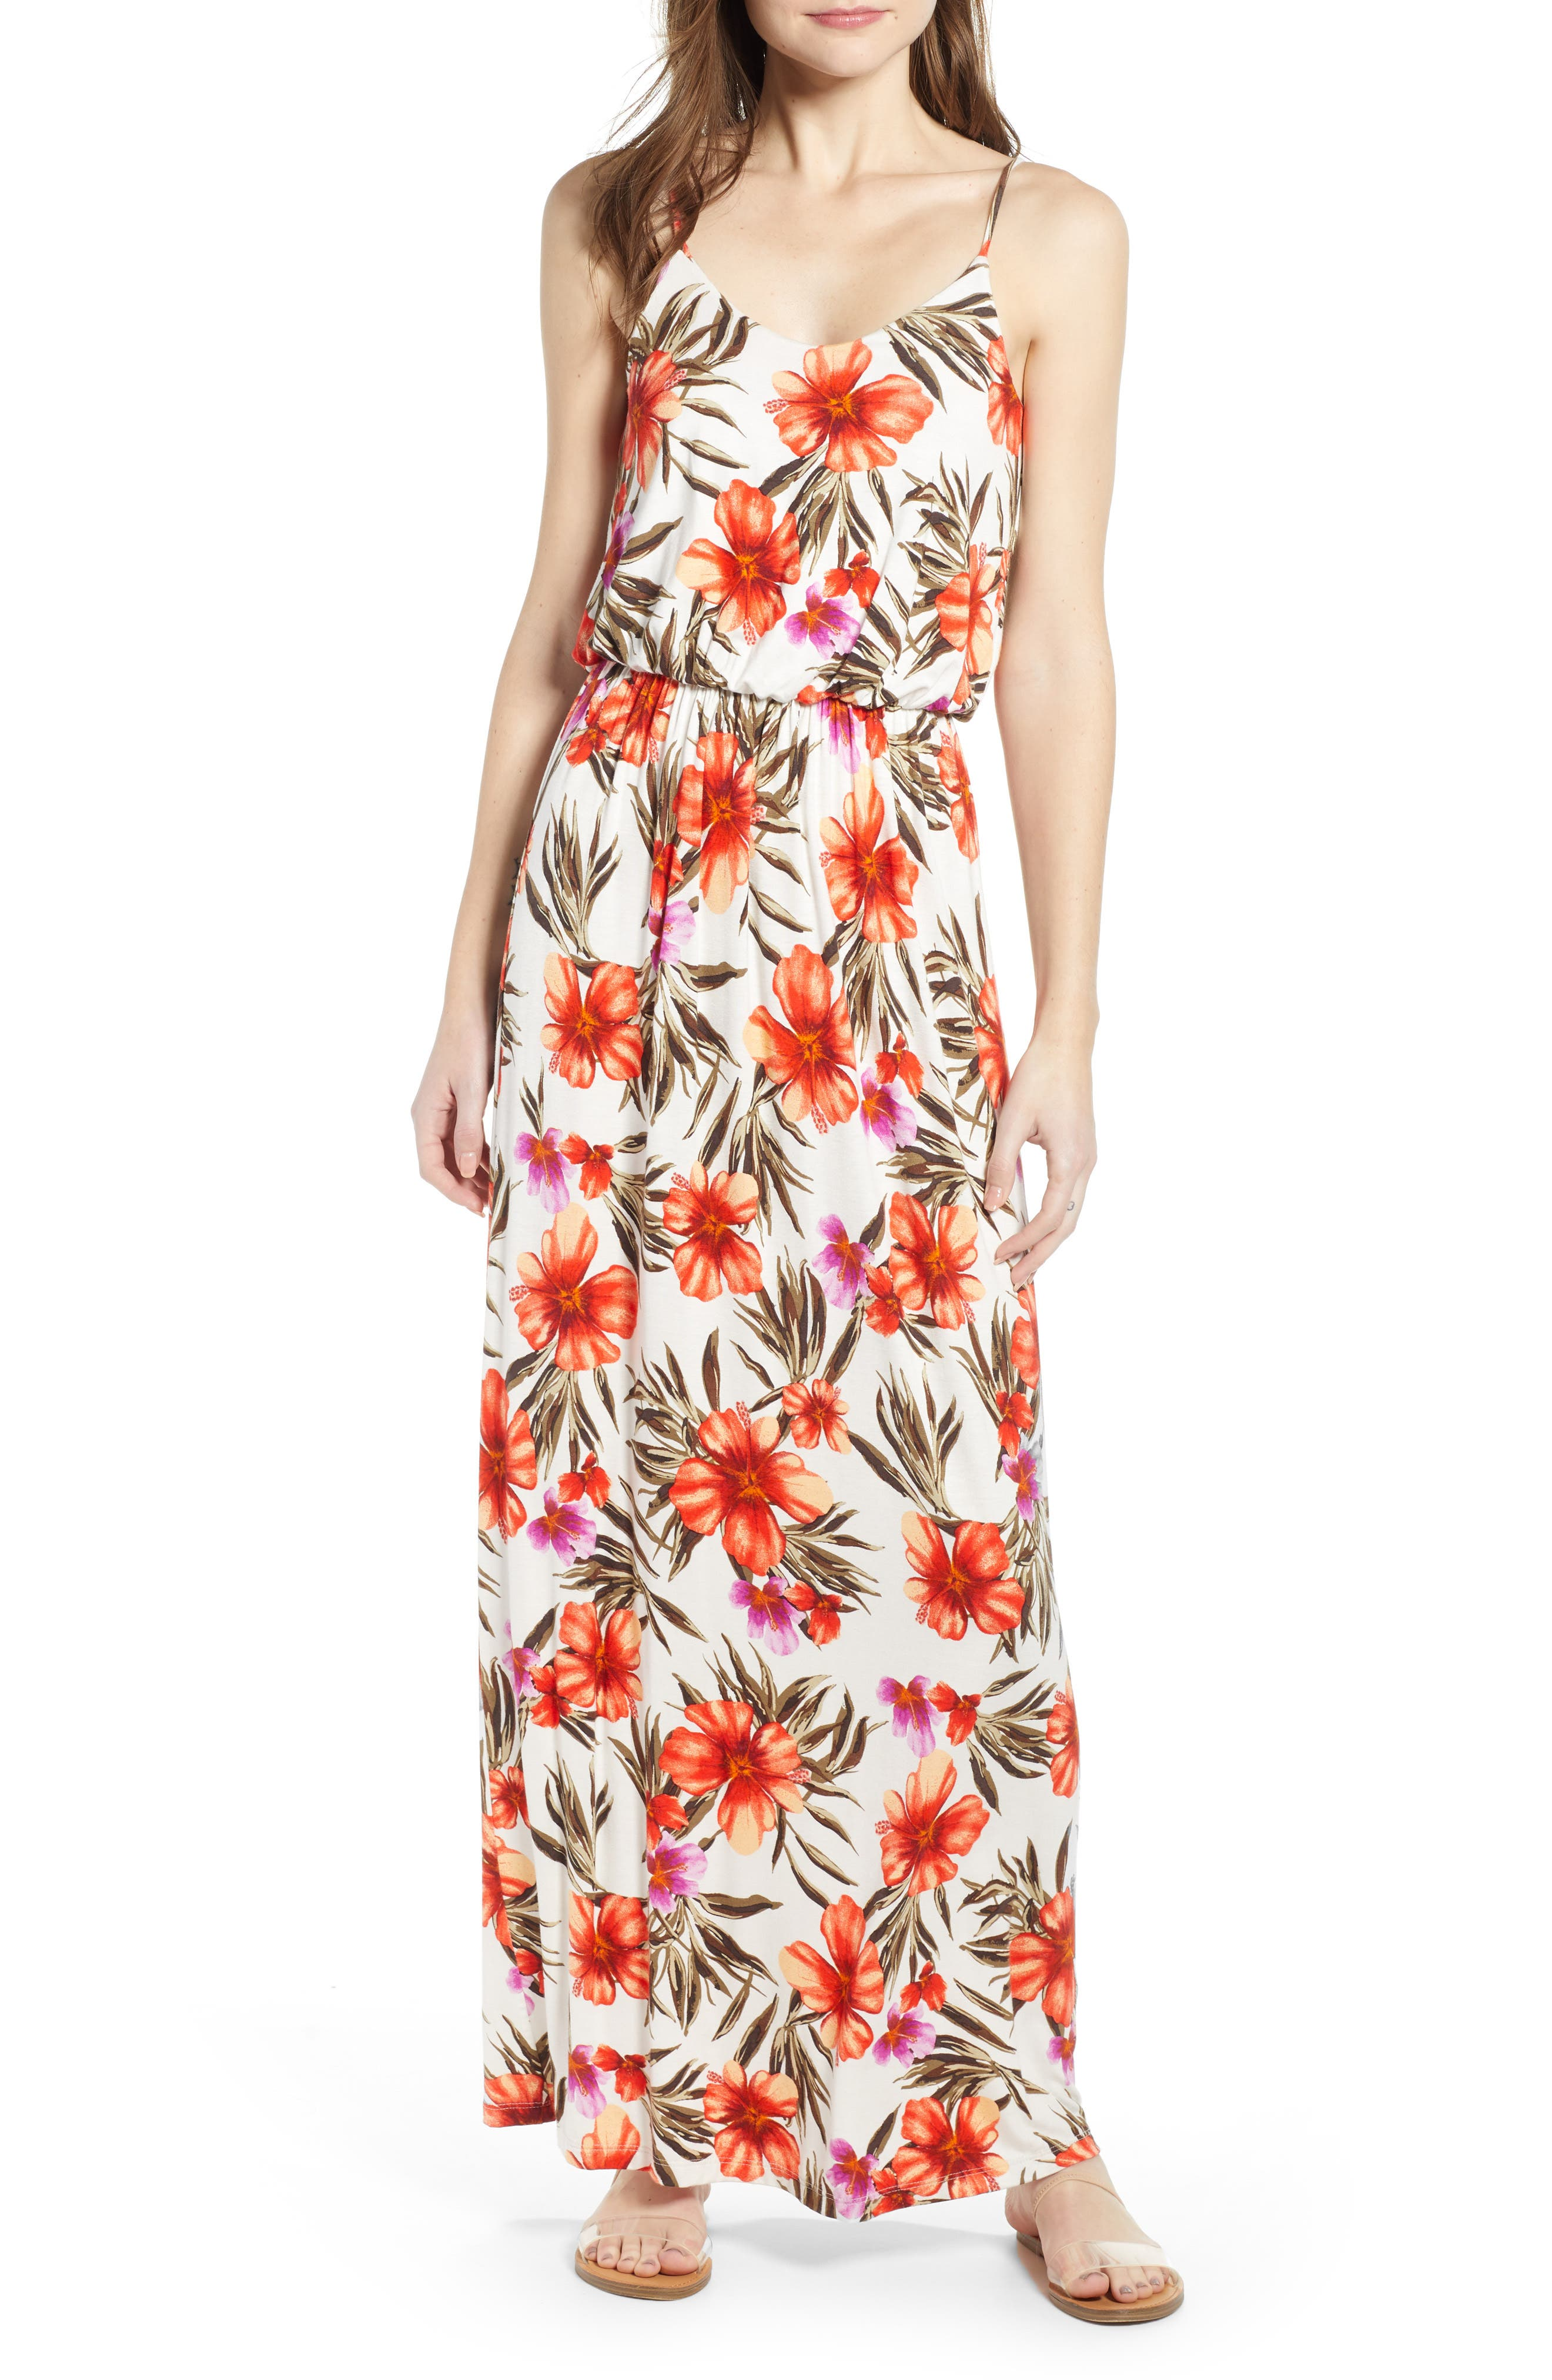 ALL IN FAVOR Knit Maxi Dress, Main, color, OFF WHITE/HOT CORAL